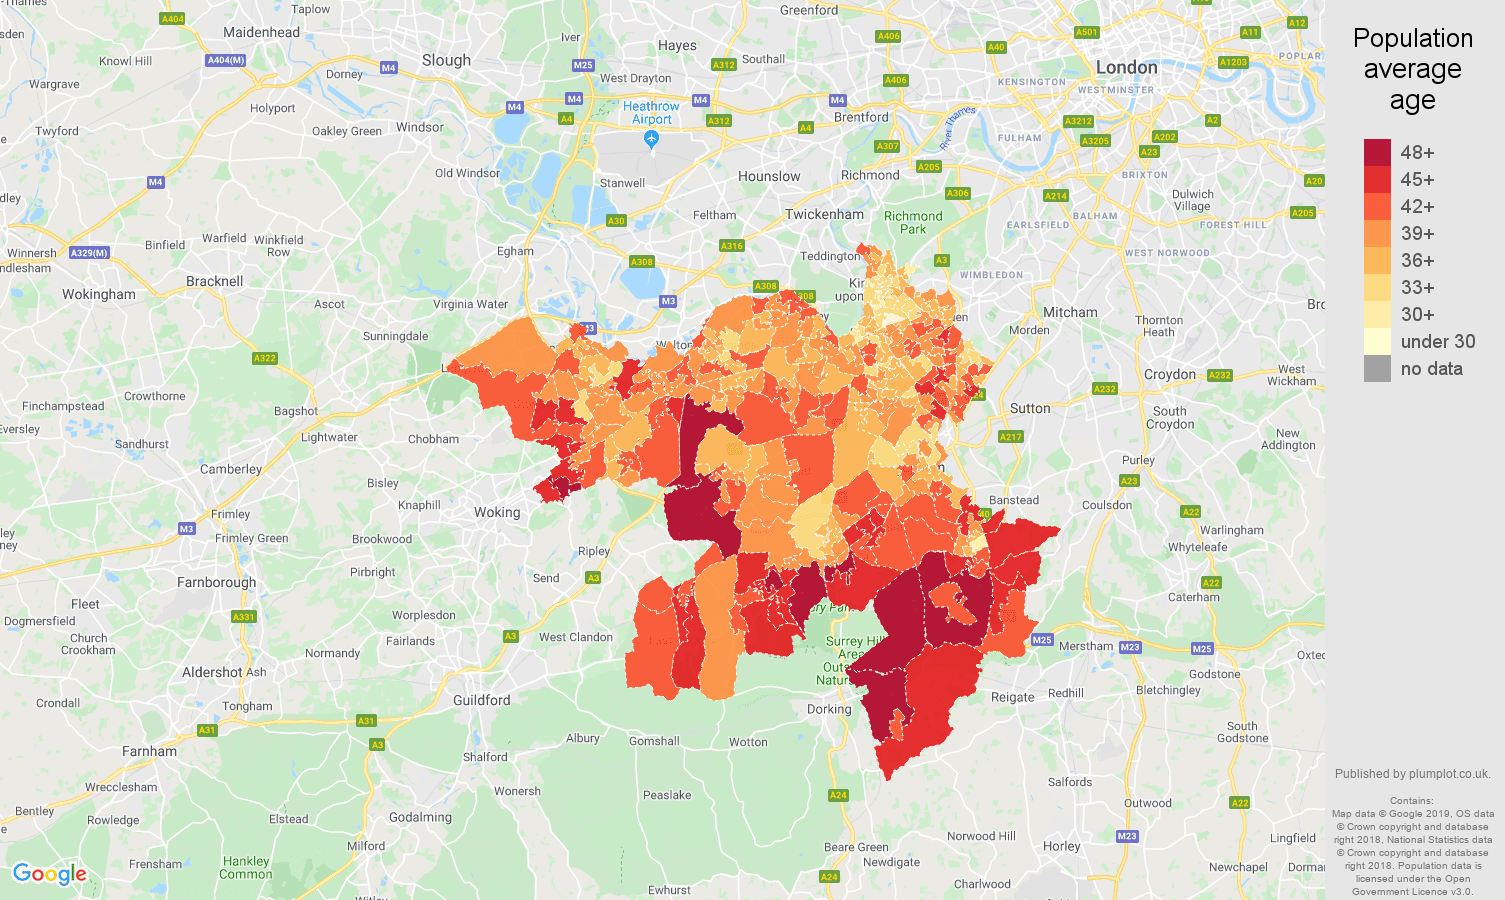 Kingston upon Thames population average age map